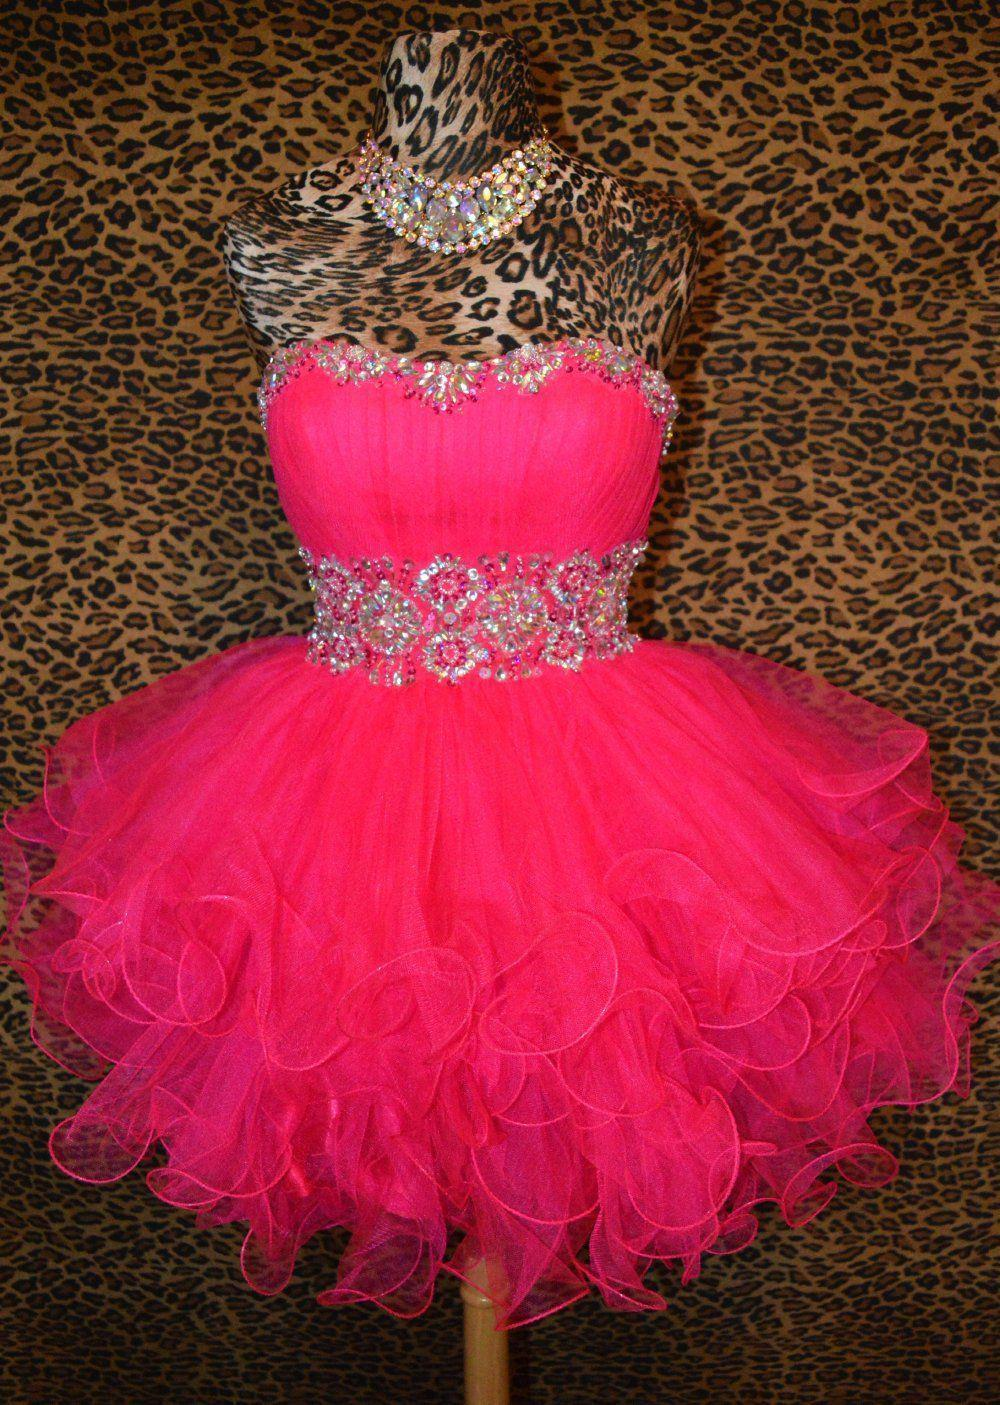 Fuschia Pink Short Prom Pageant Evening Cocktail Wedding